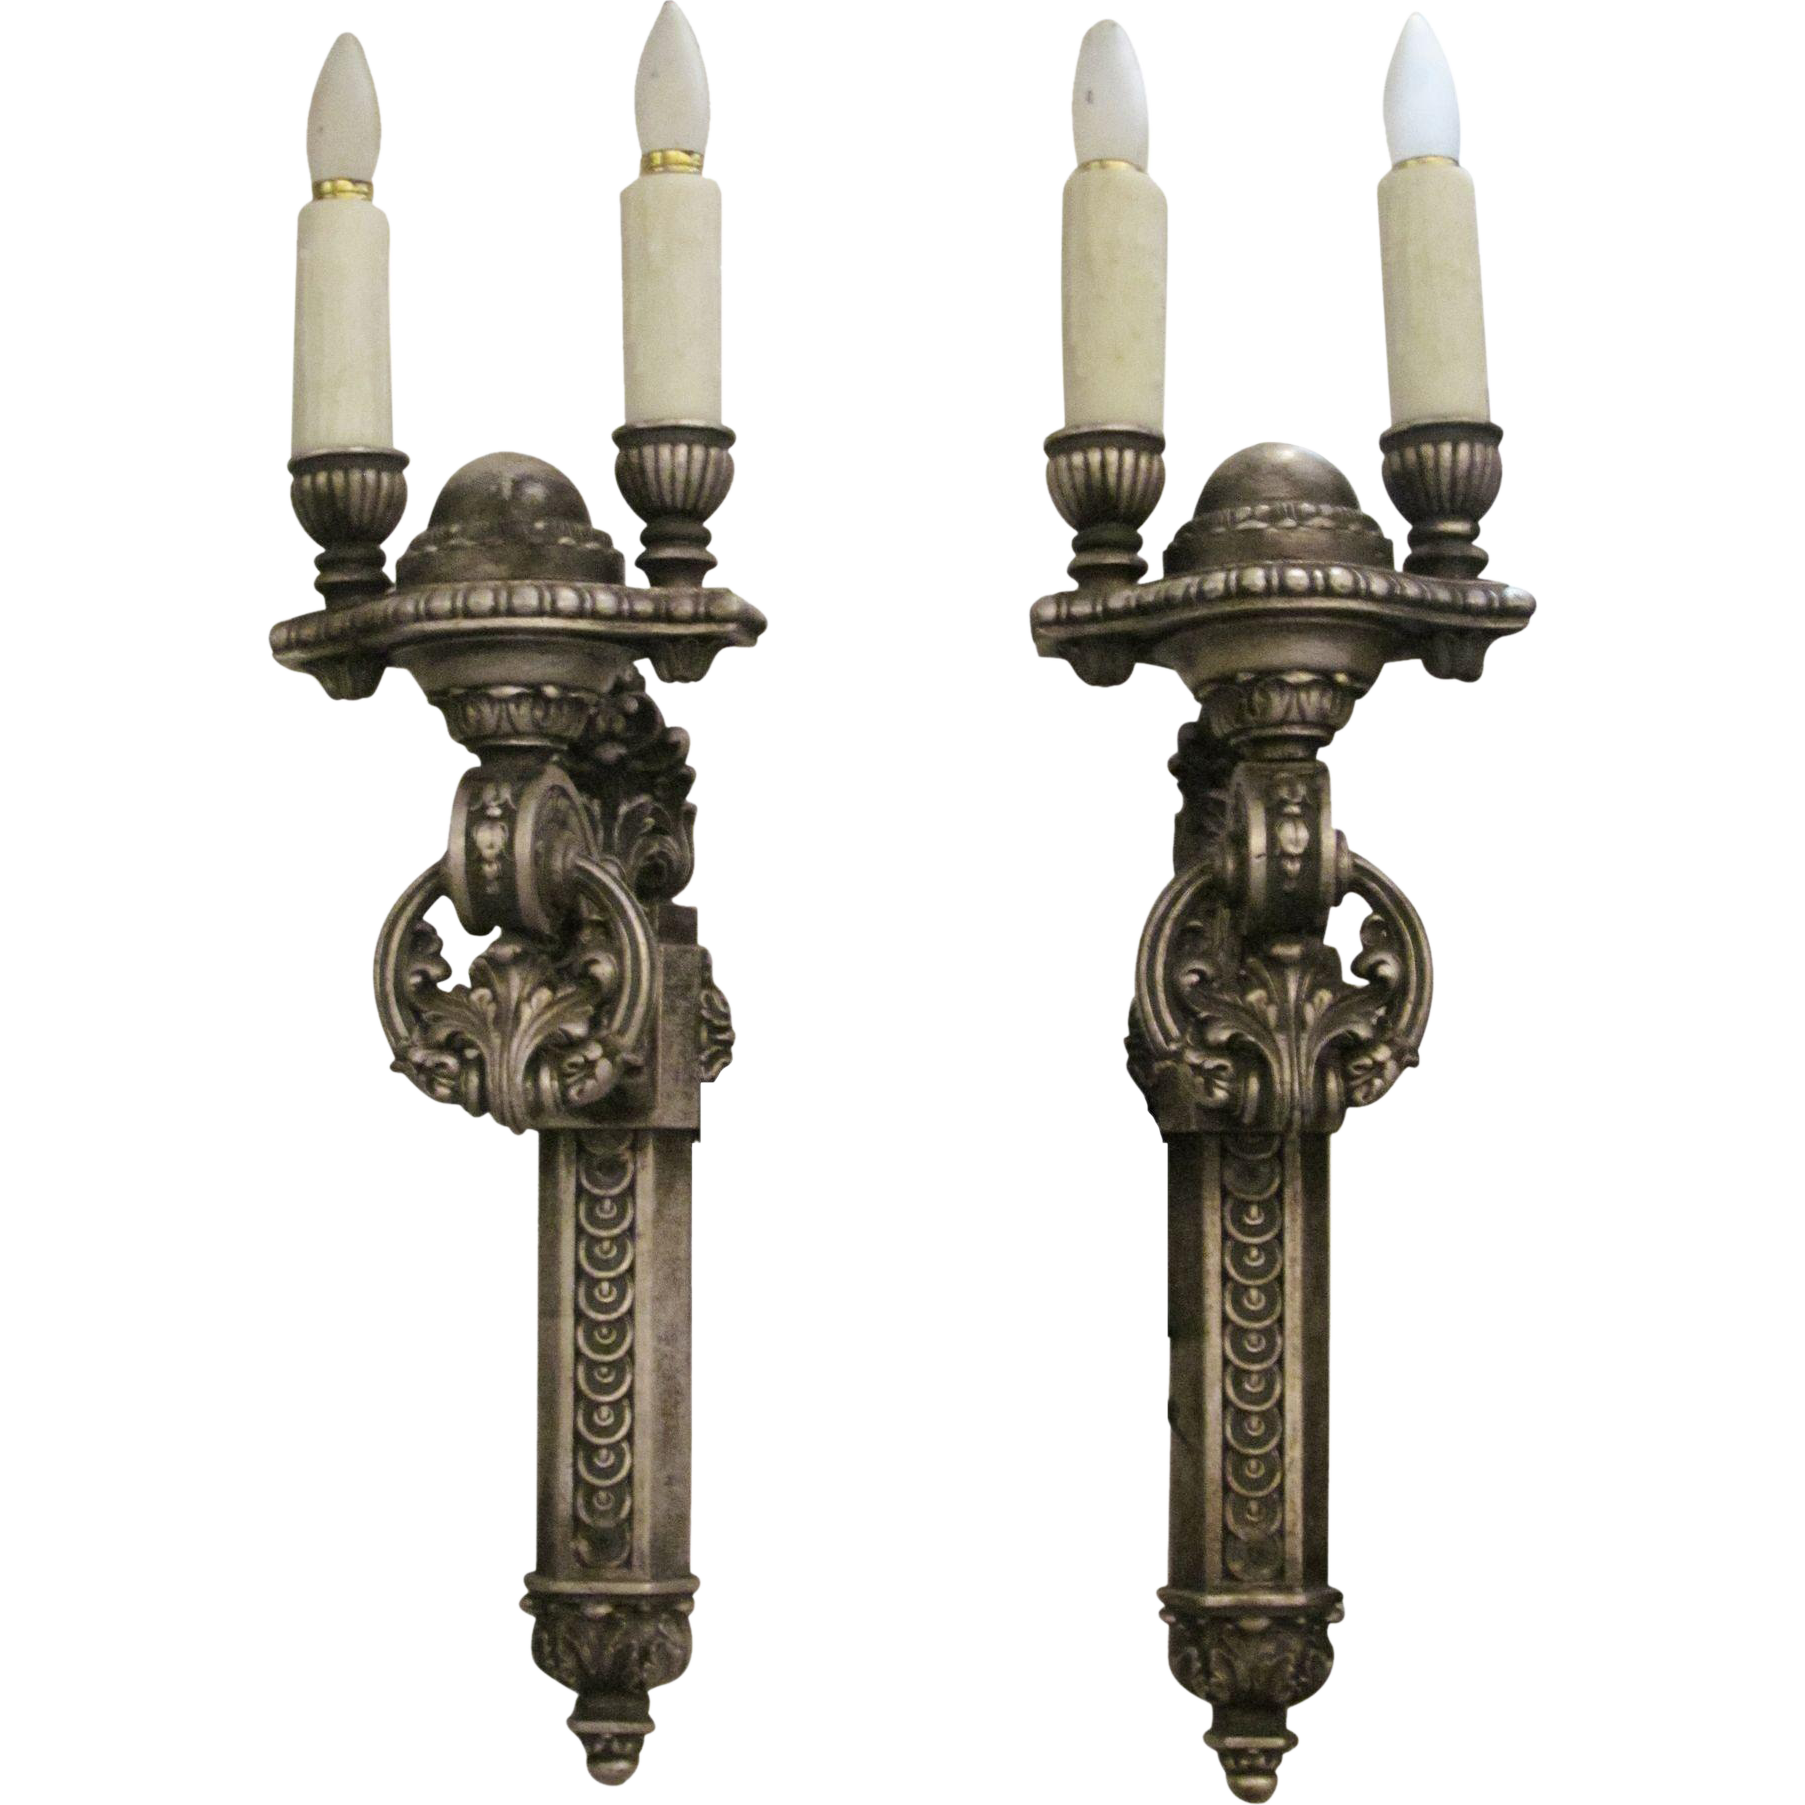 Wooden double arm ornate sconces